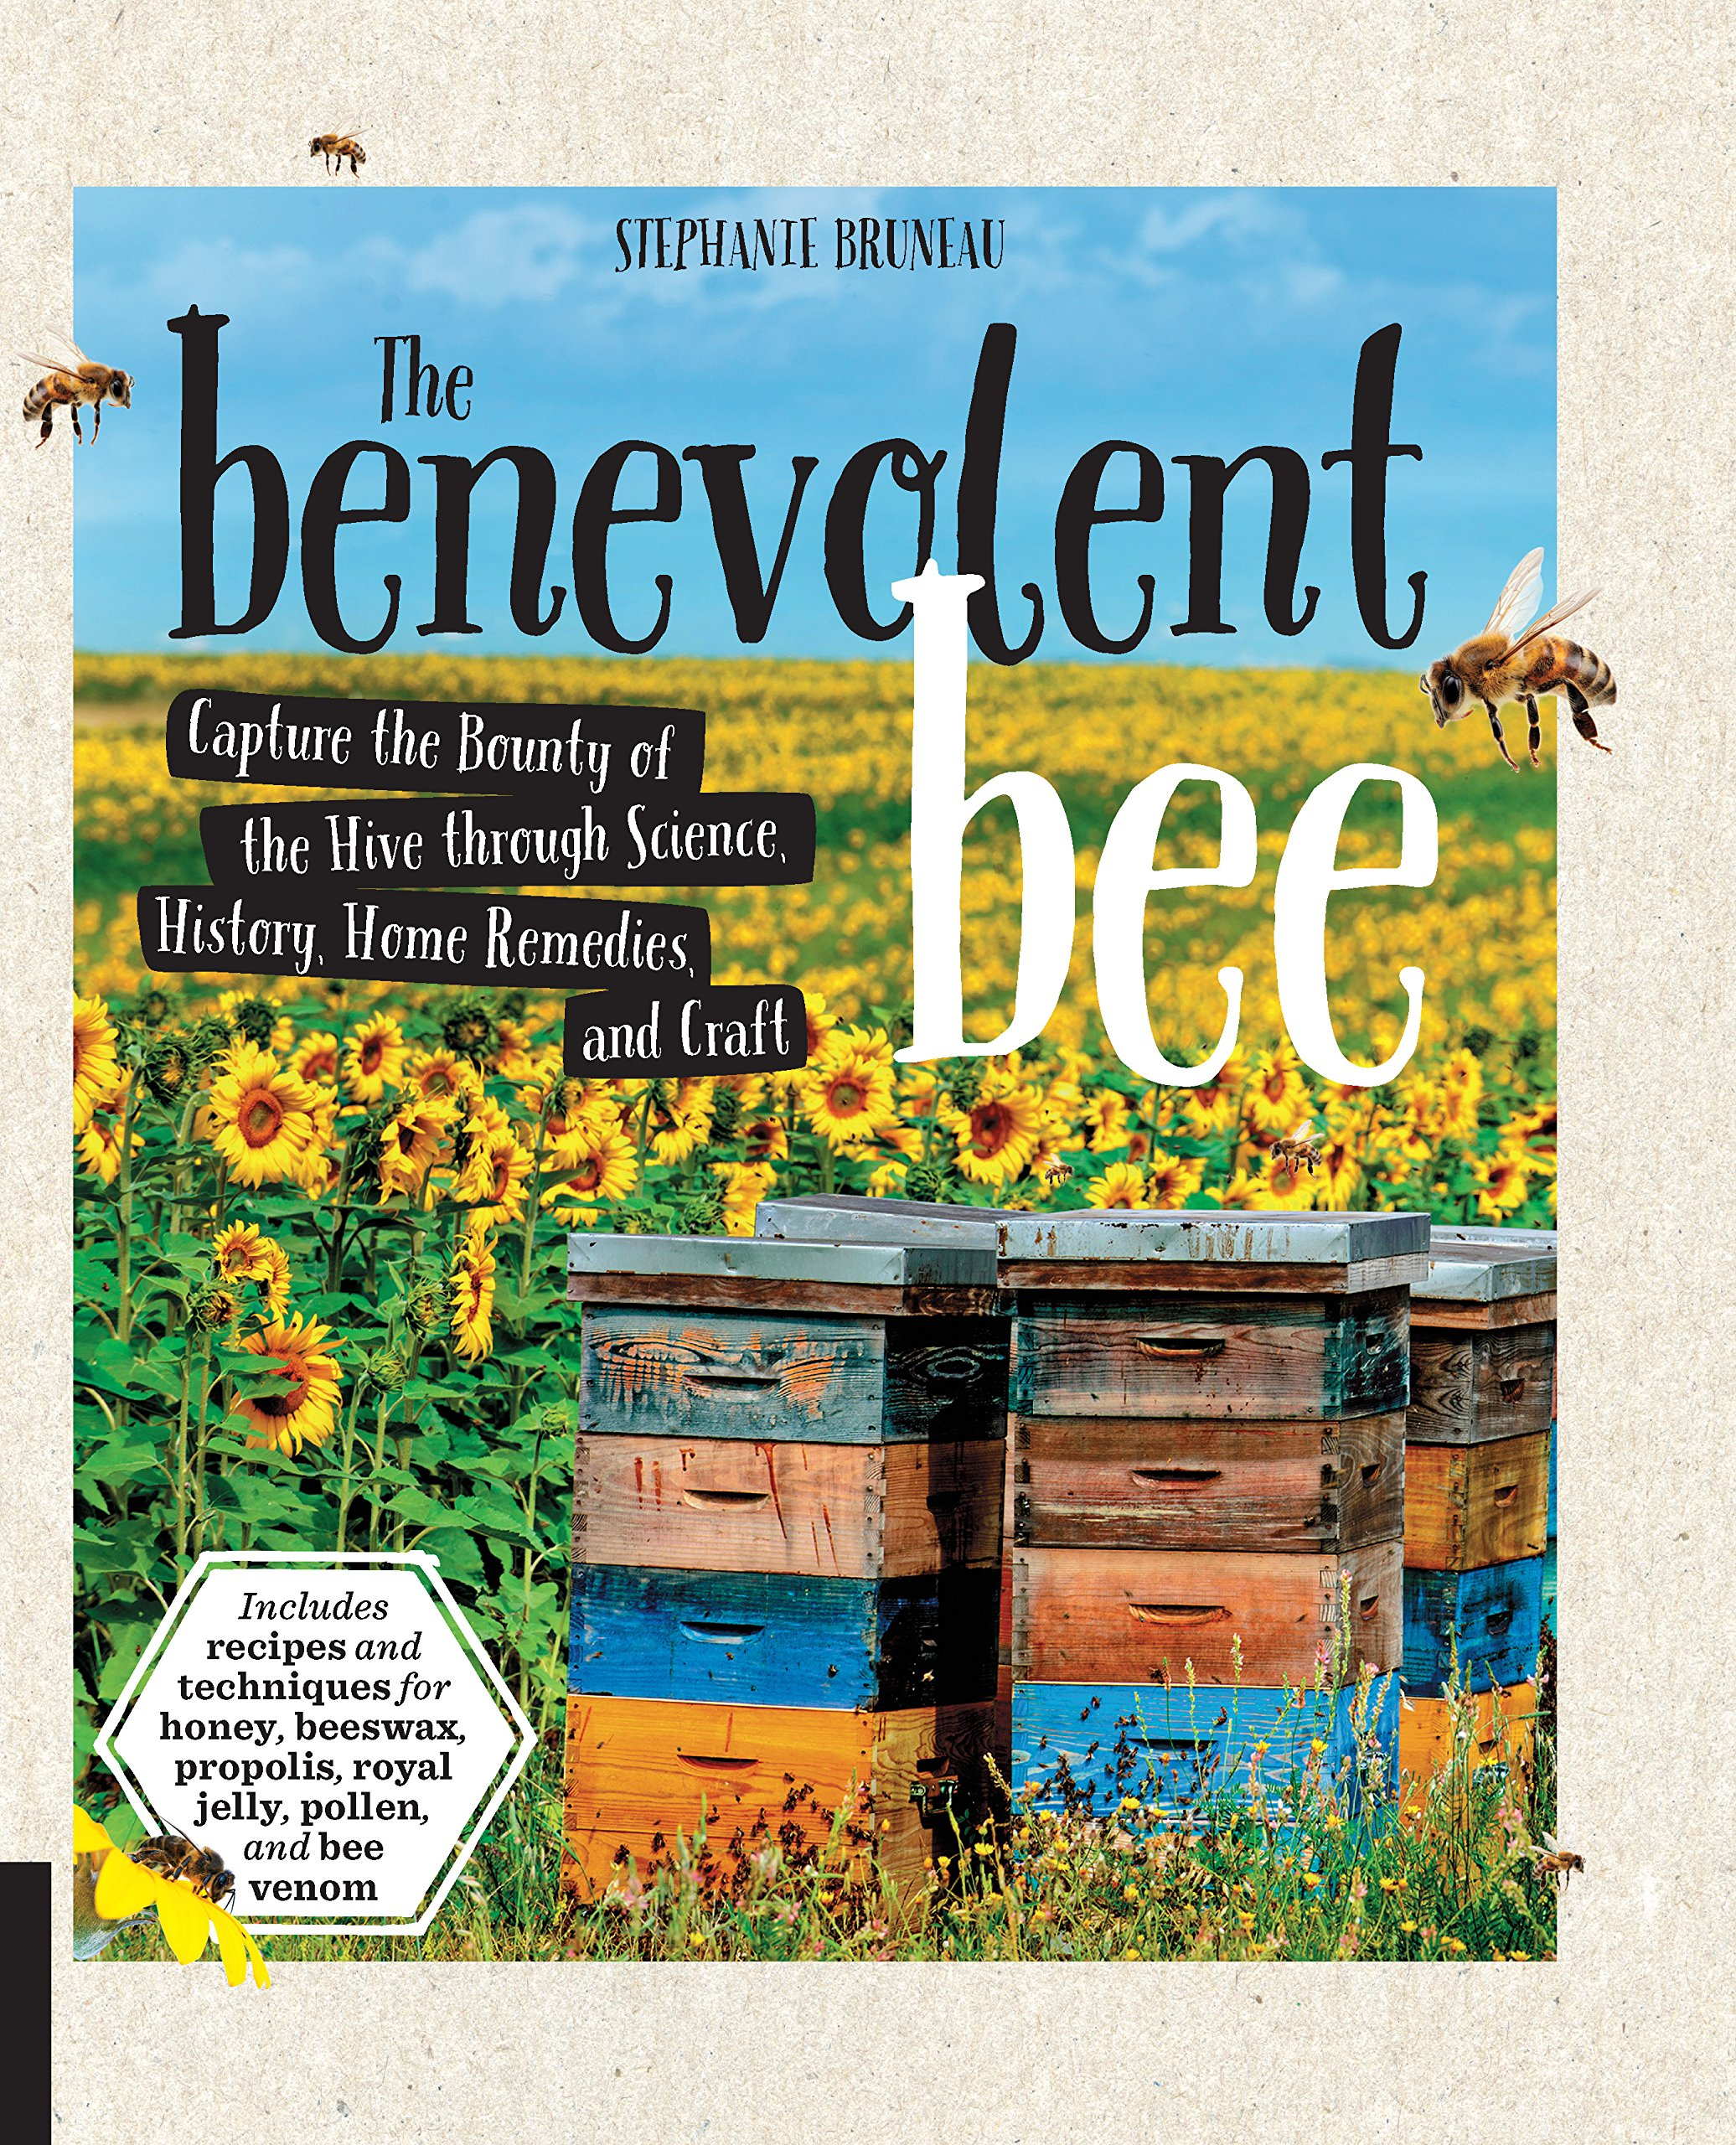 The Benevolent Bee: Capture the Bounty of the Hive through Science, History, Home Remedies and Craft - Includes recipes and techniques for honey, beeswax, propolis, royal jelly, pollen, and bee venom